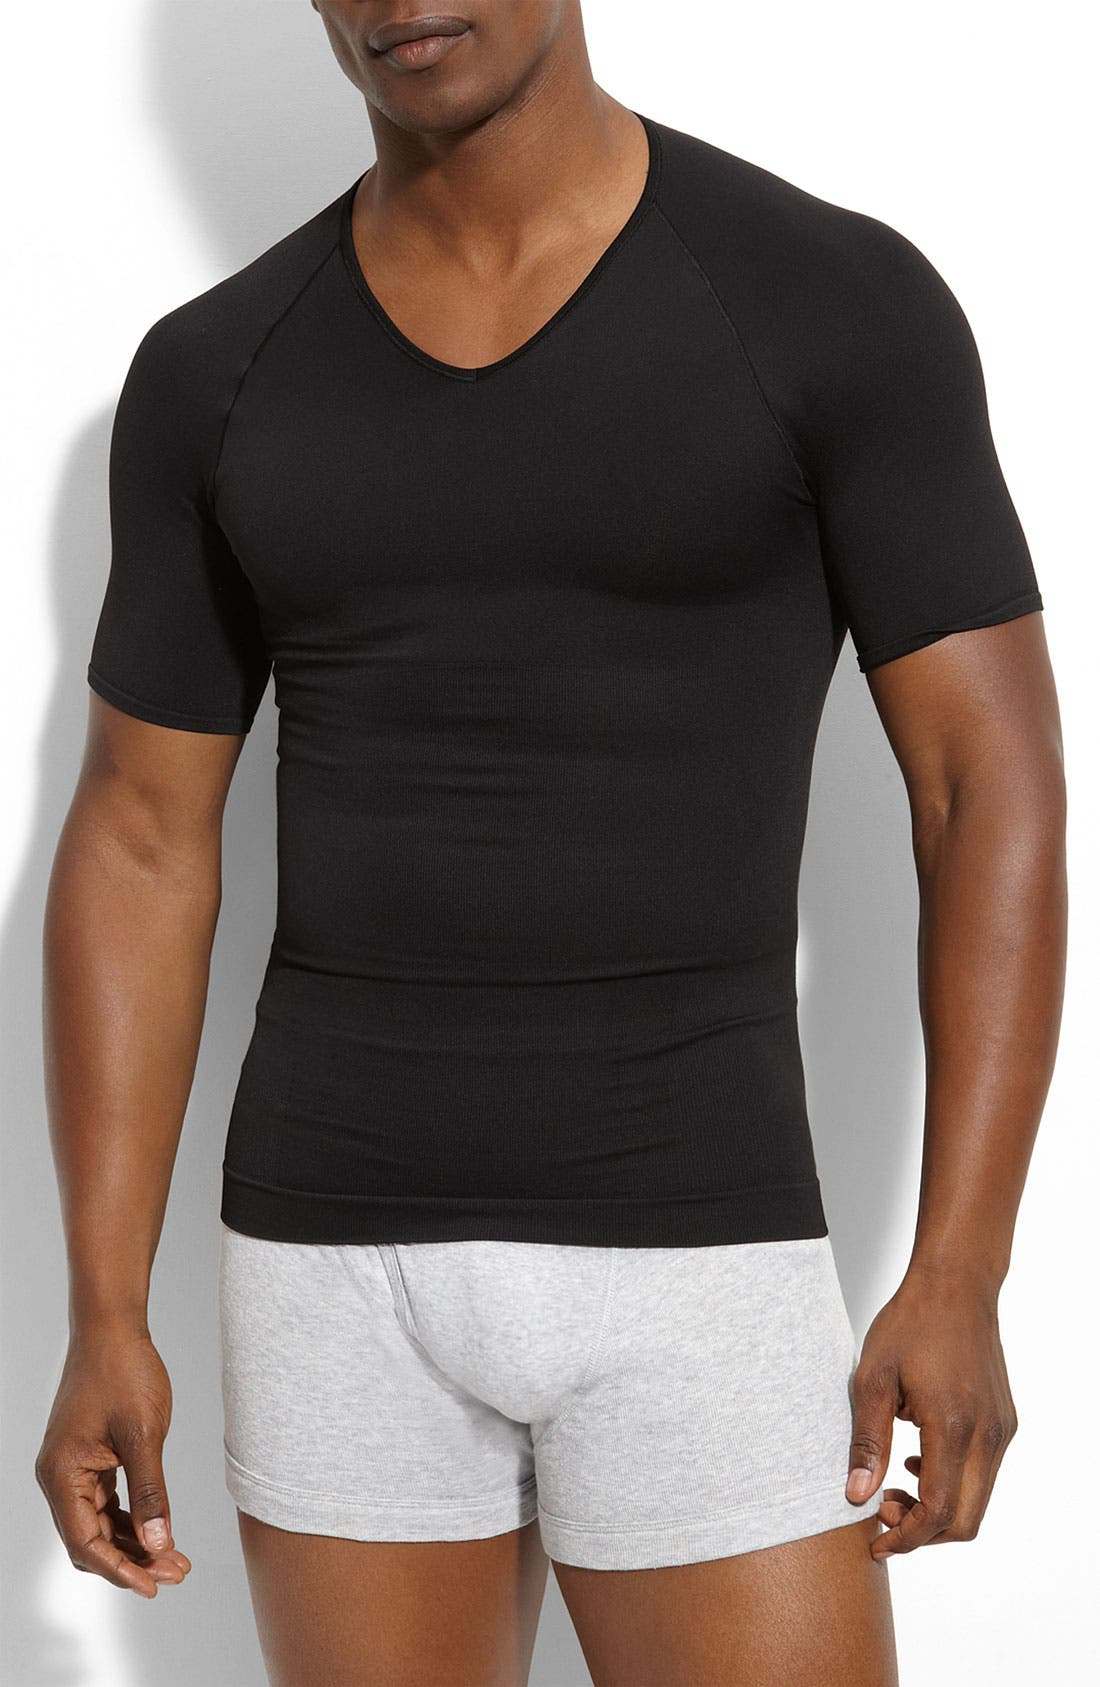 Alternate Image 1 Selected - SPANX® 'Zoned Performance' V-Neck T-Shirt